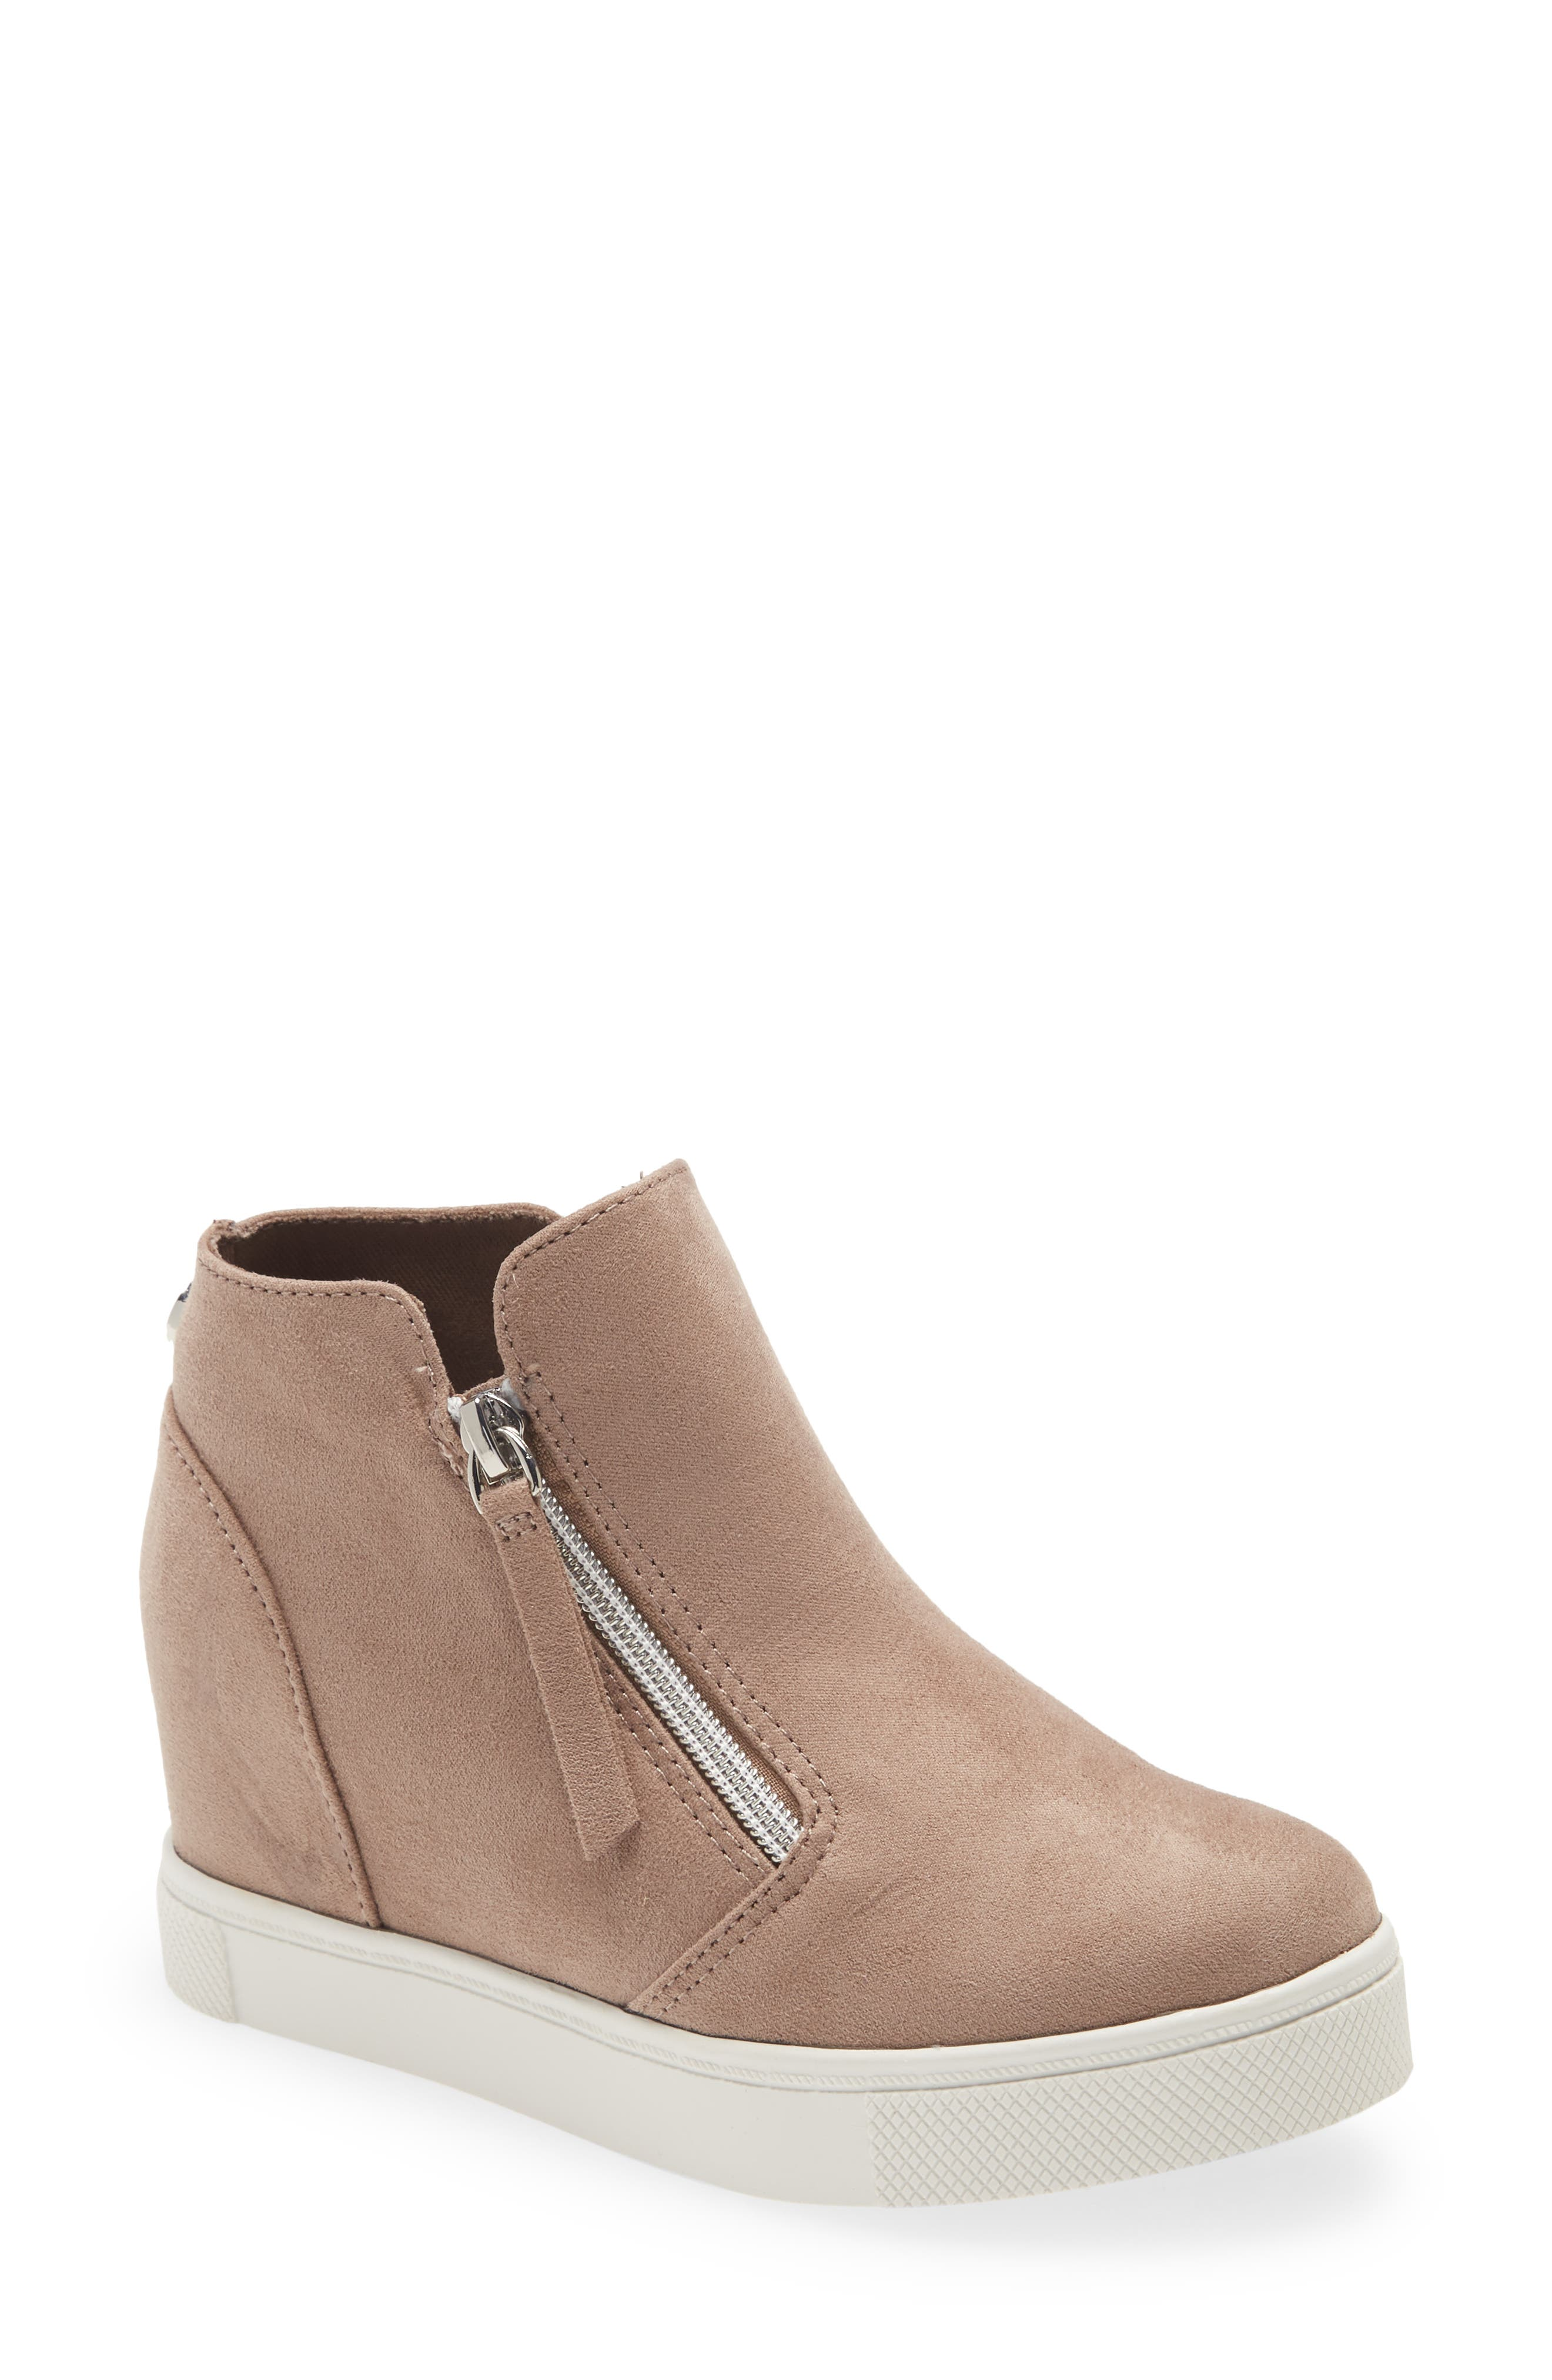 Little Girls' Wedges Shoes (Sizes 12.5-3)